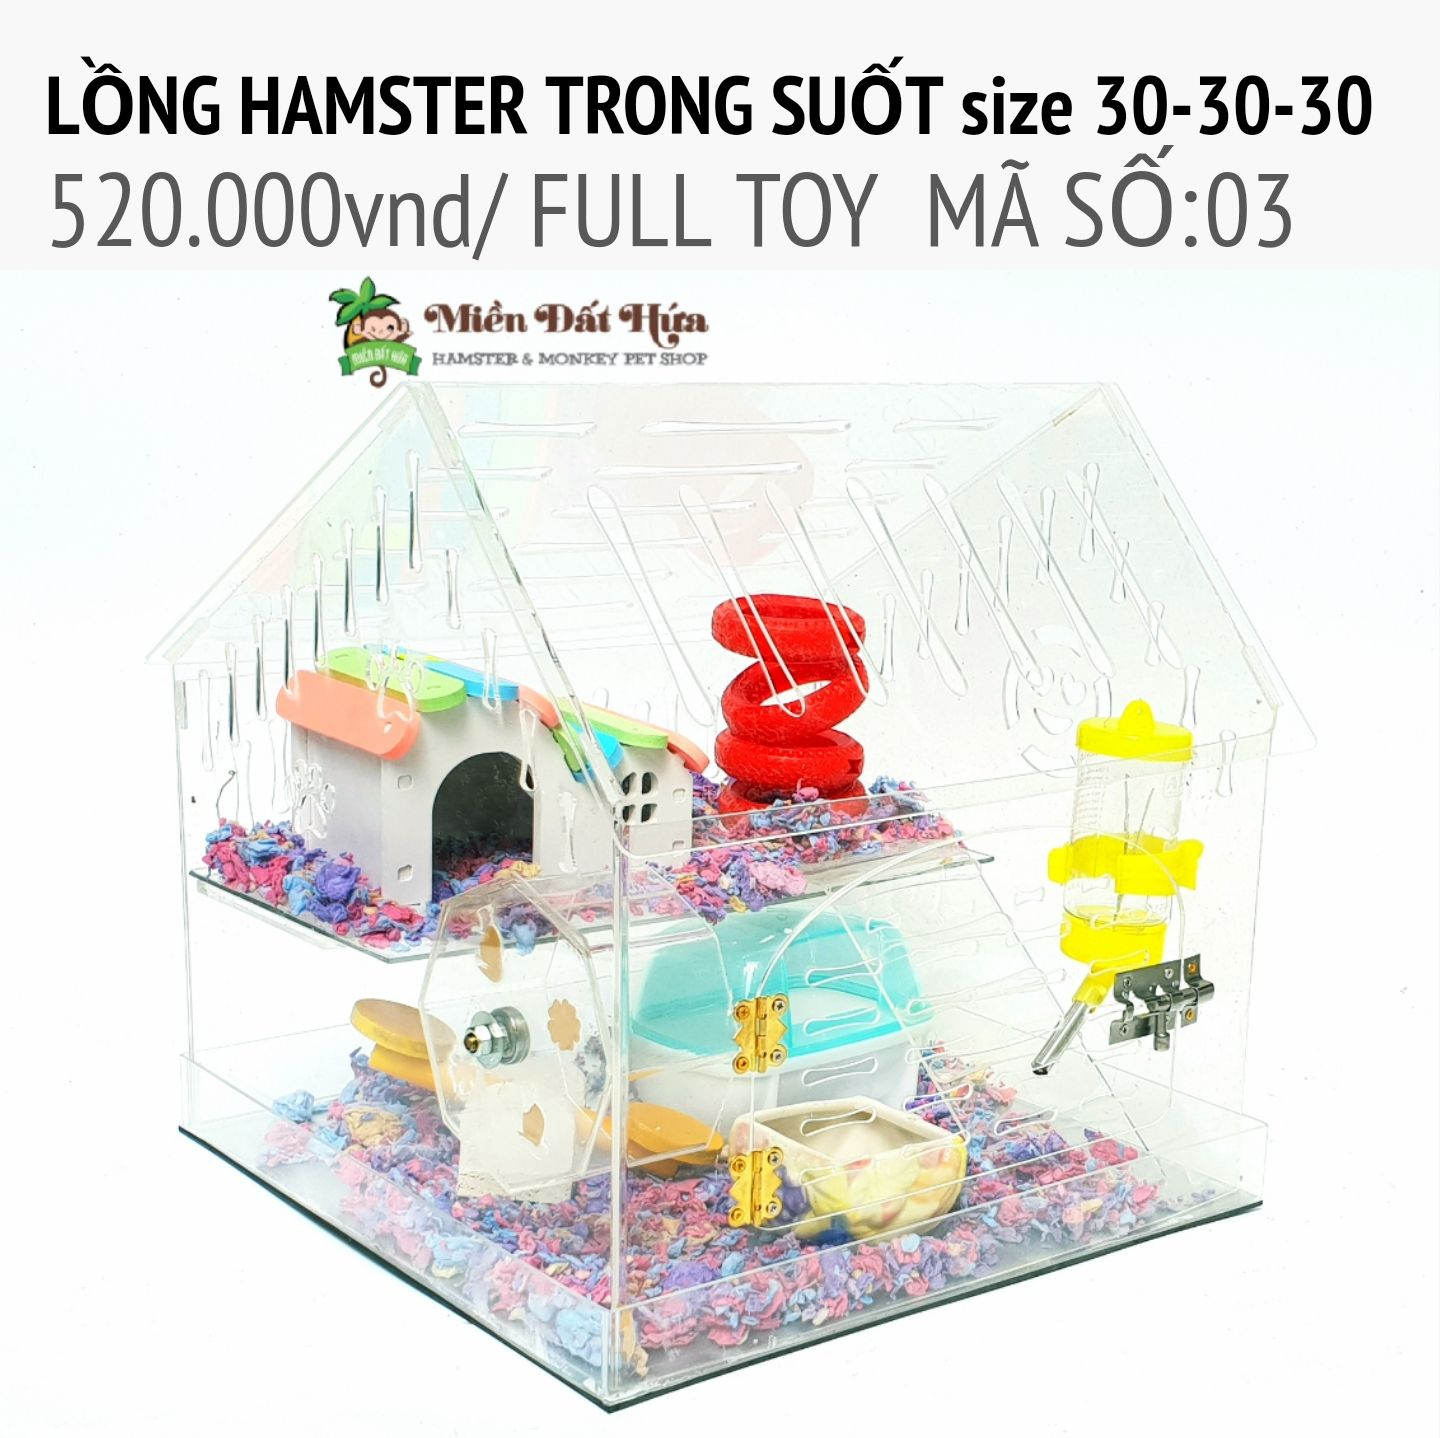 LỒNG hamster trong suốt size 30-30-30 ms03